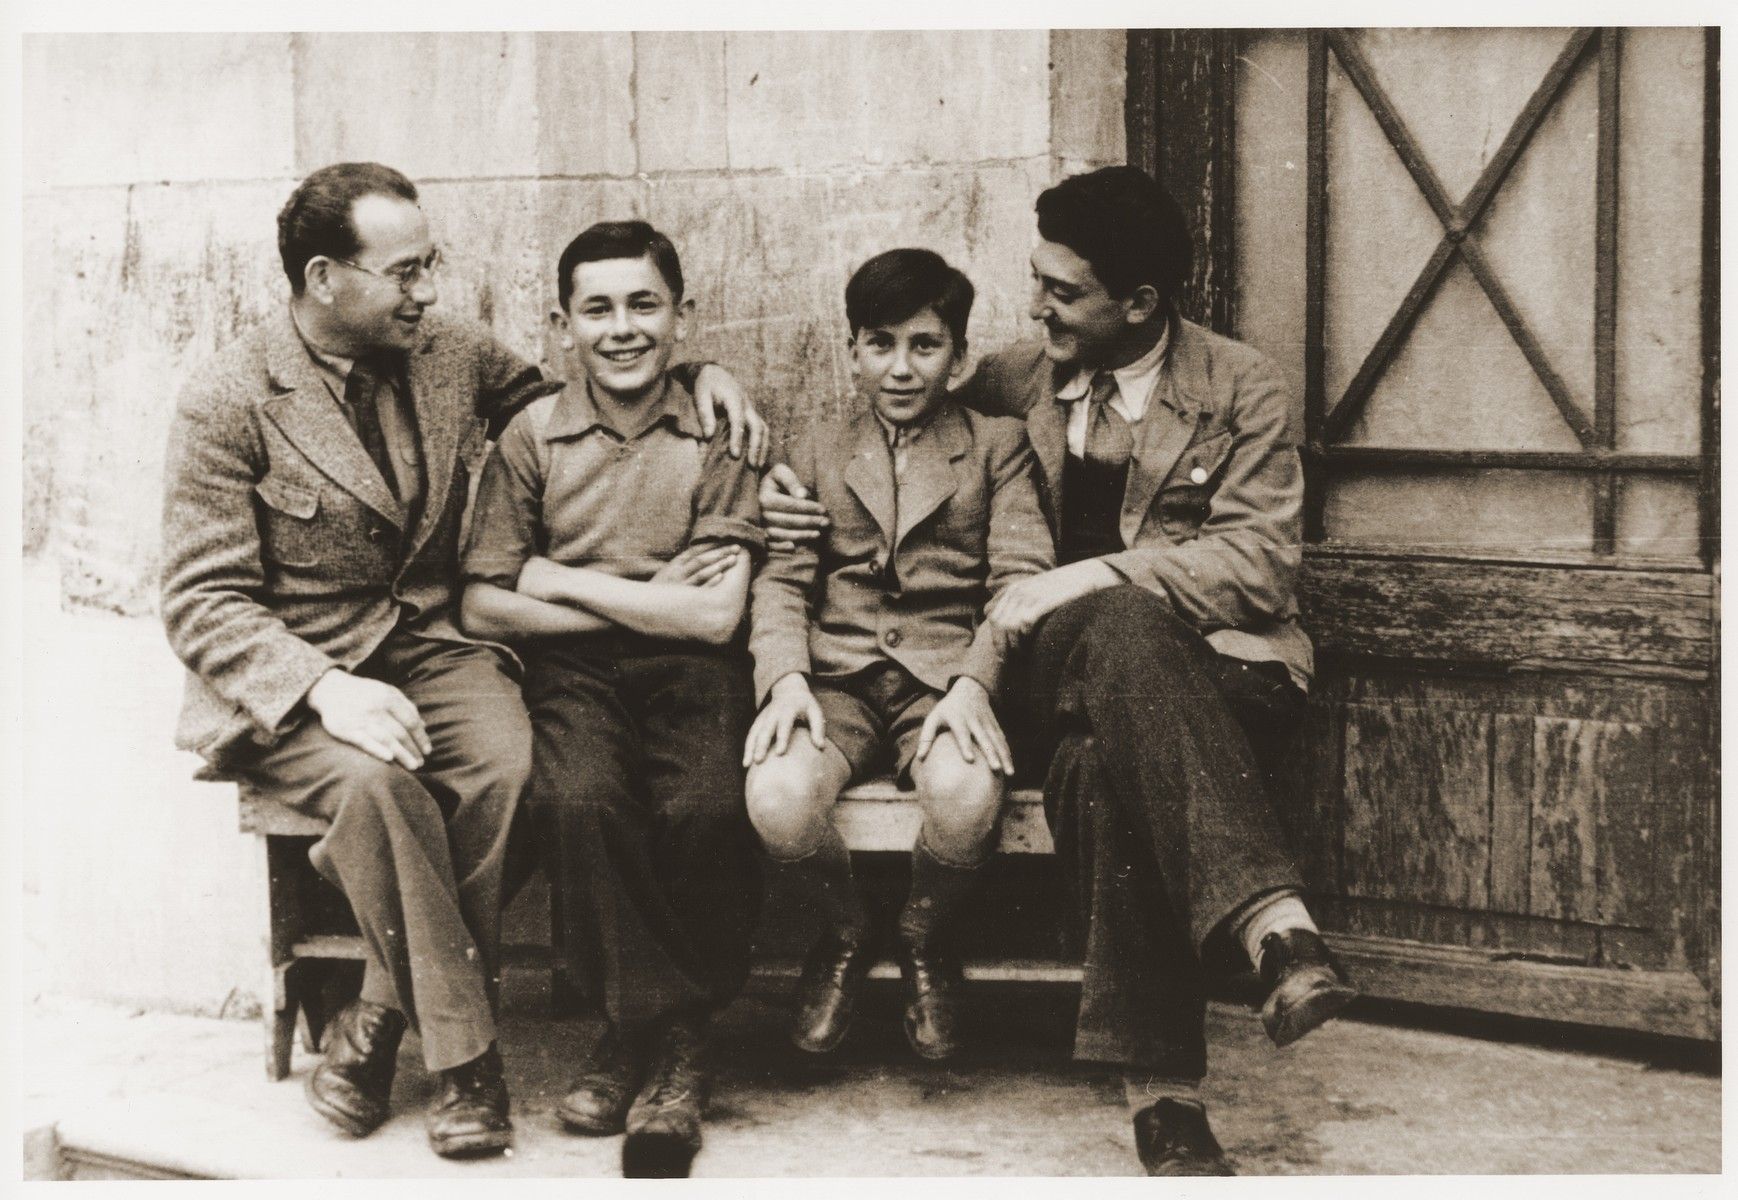 Two Jewish boys sit on a bench with their counselors at the Rothschild's Château Ferrière, where they are attending a summer camp sponsored by the OSE (Oeuvre de secours aux Enfants).   Pictured from left to right are Manfred Reingewitz, Romek Wajsman, Salek Finkelstein and Ralph Lewin.